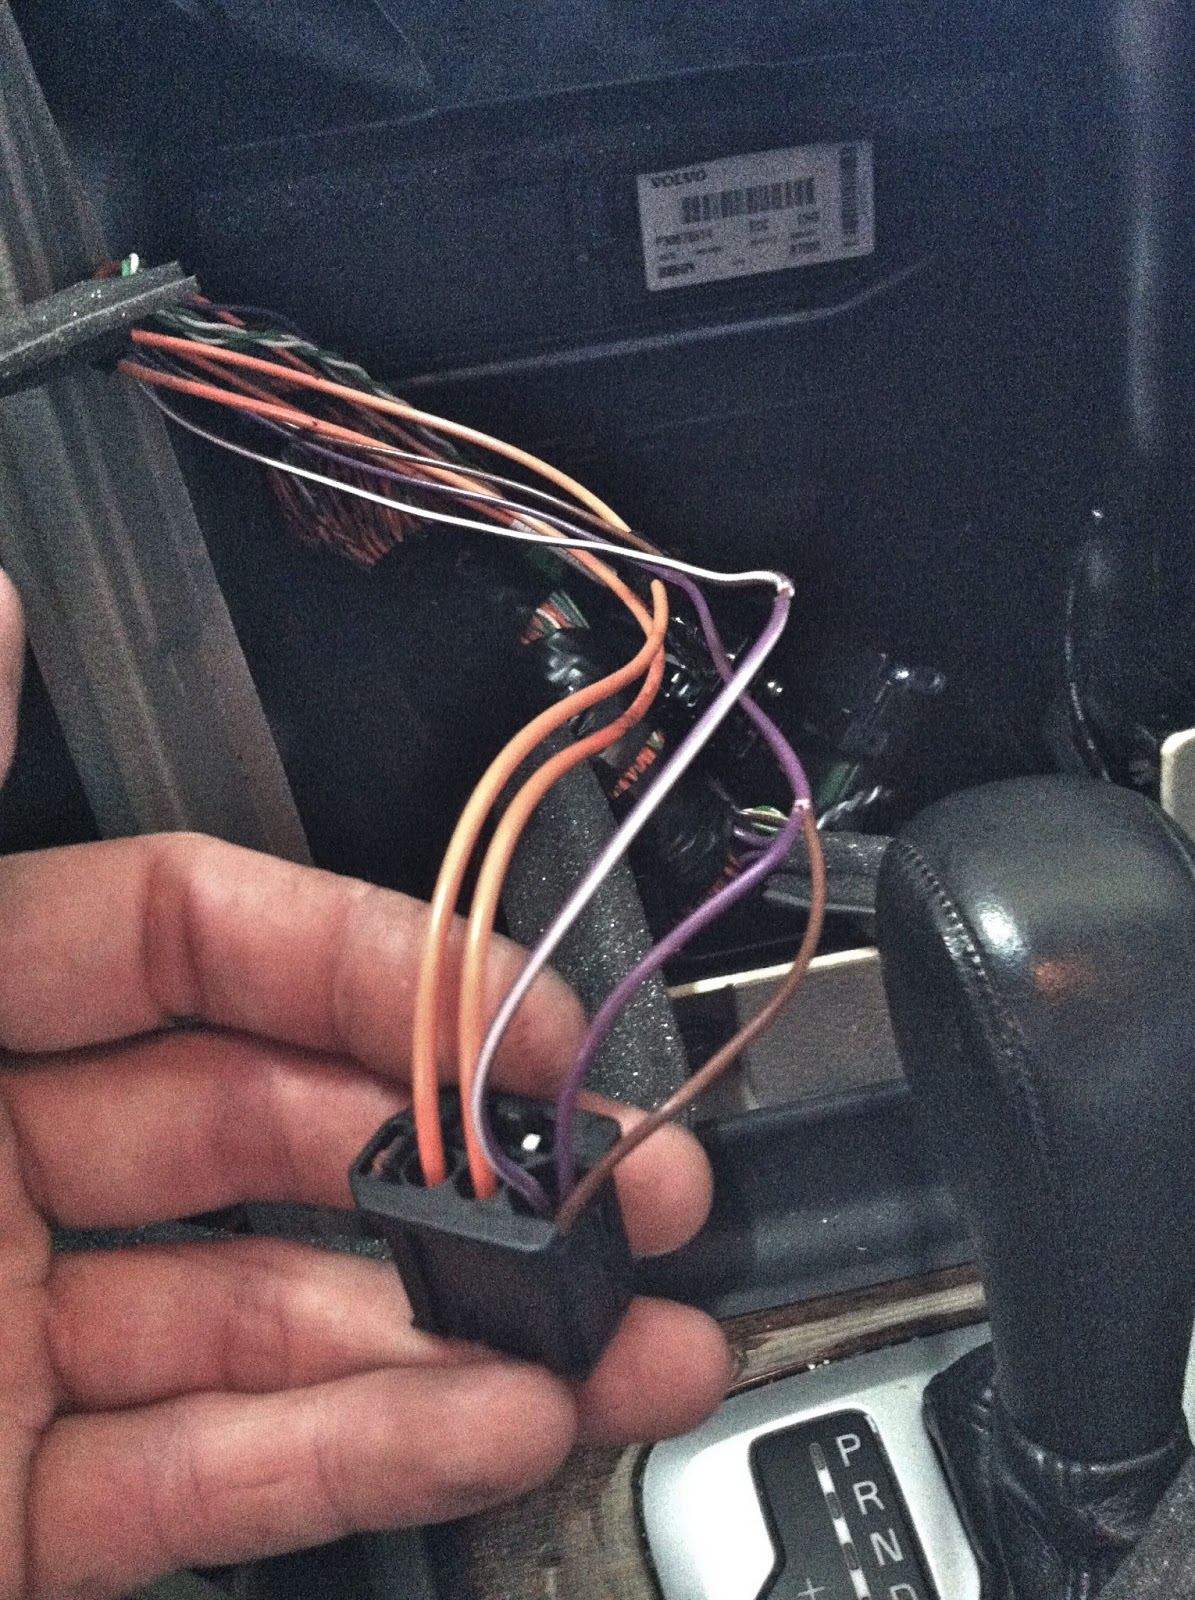 Car Audio Tips Tricks And How Tos Volvo Xc90 Aftermarket Stereo Head Unit Wire Harness Same As Computer Installation In Power Wires